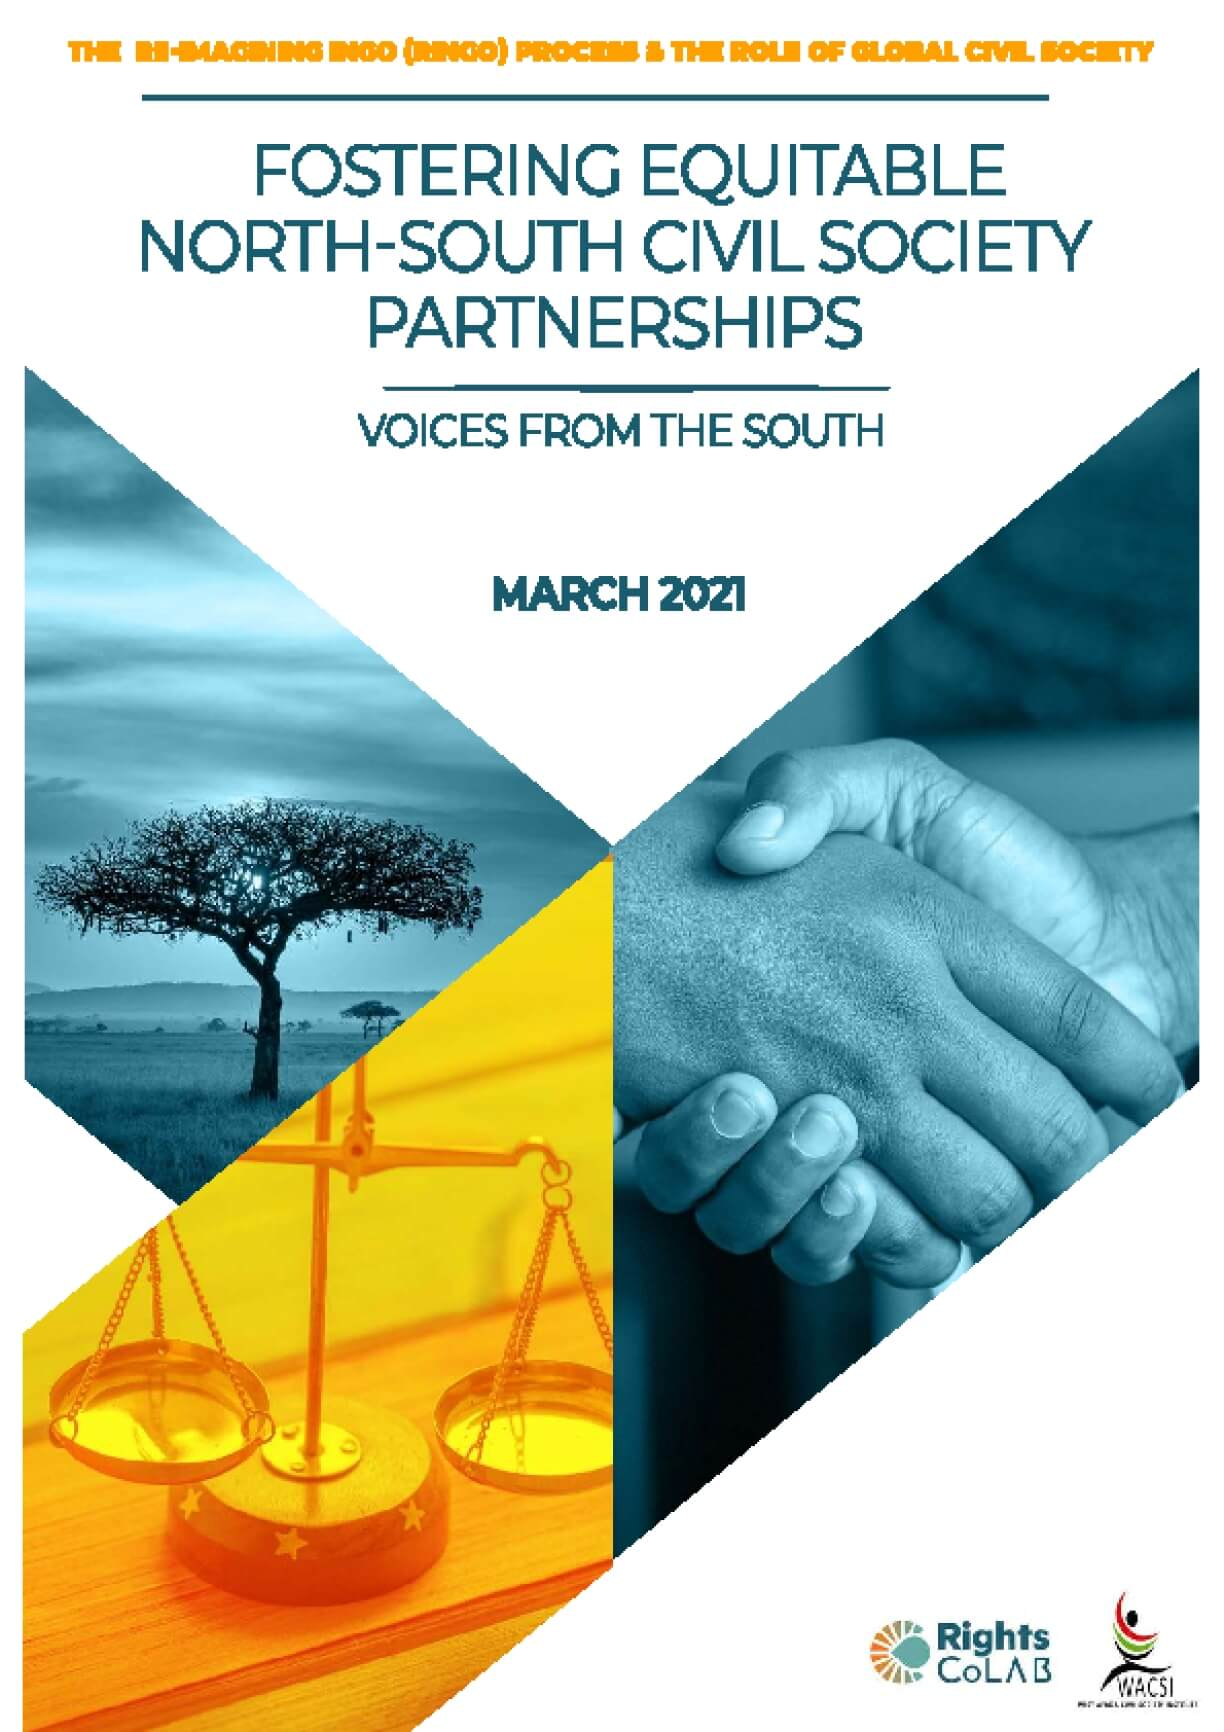 Fostering Equitable North-South Civil Society Partnerships: Voices from the South